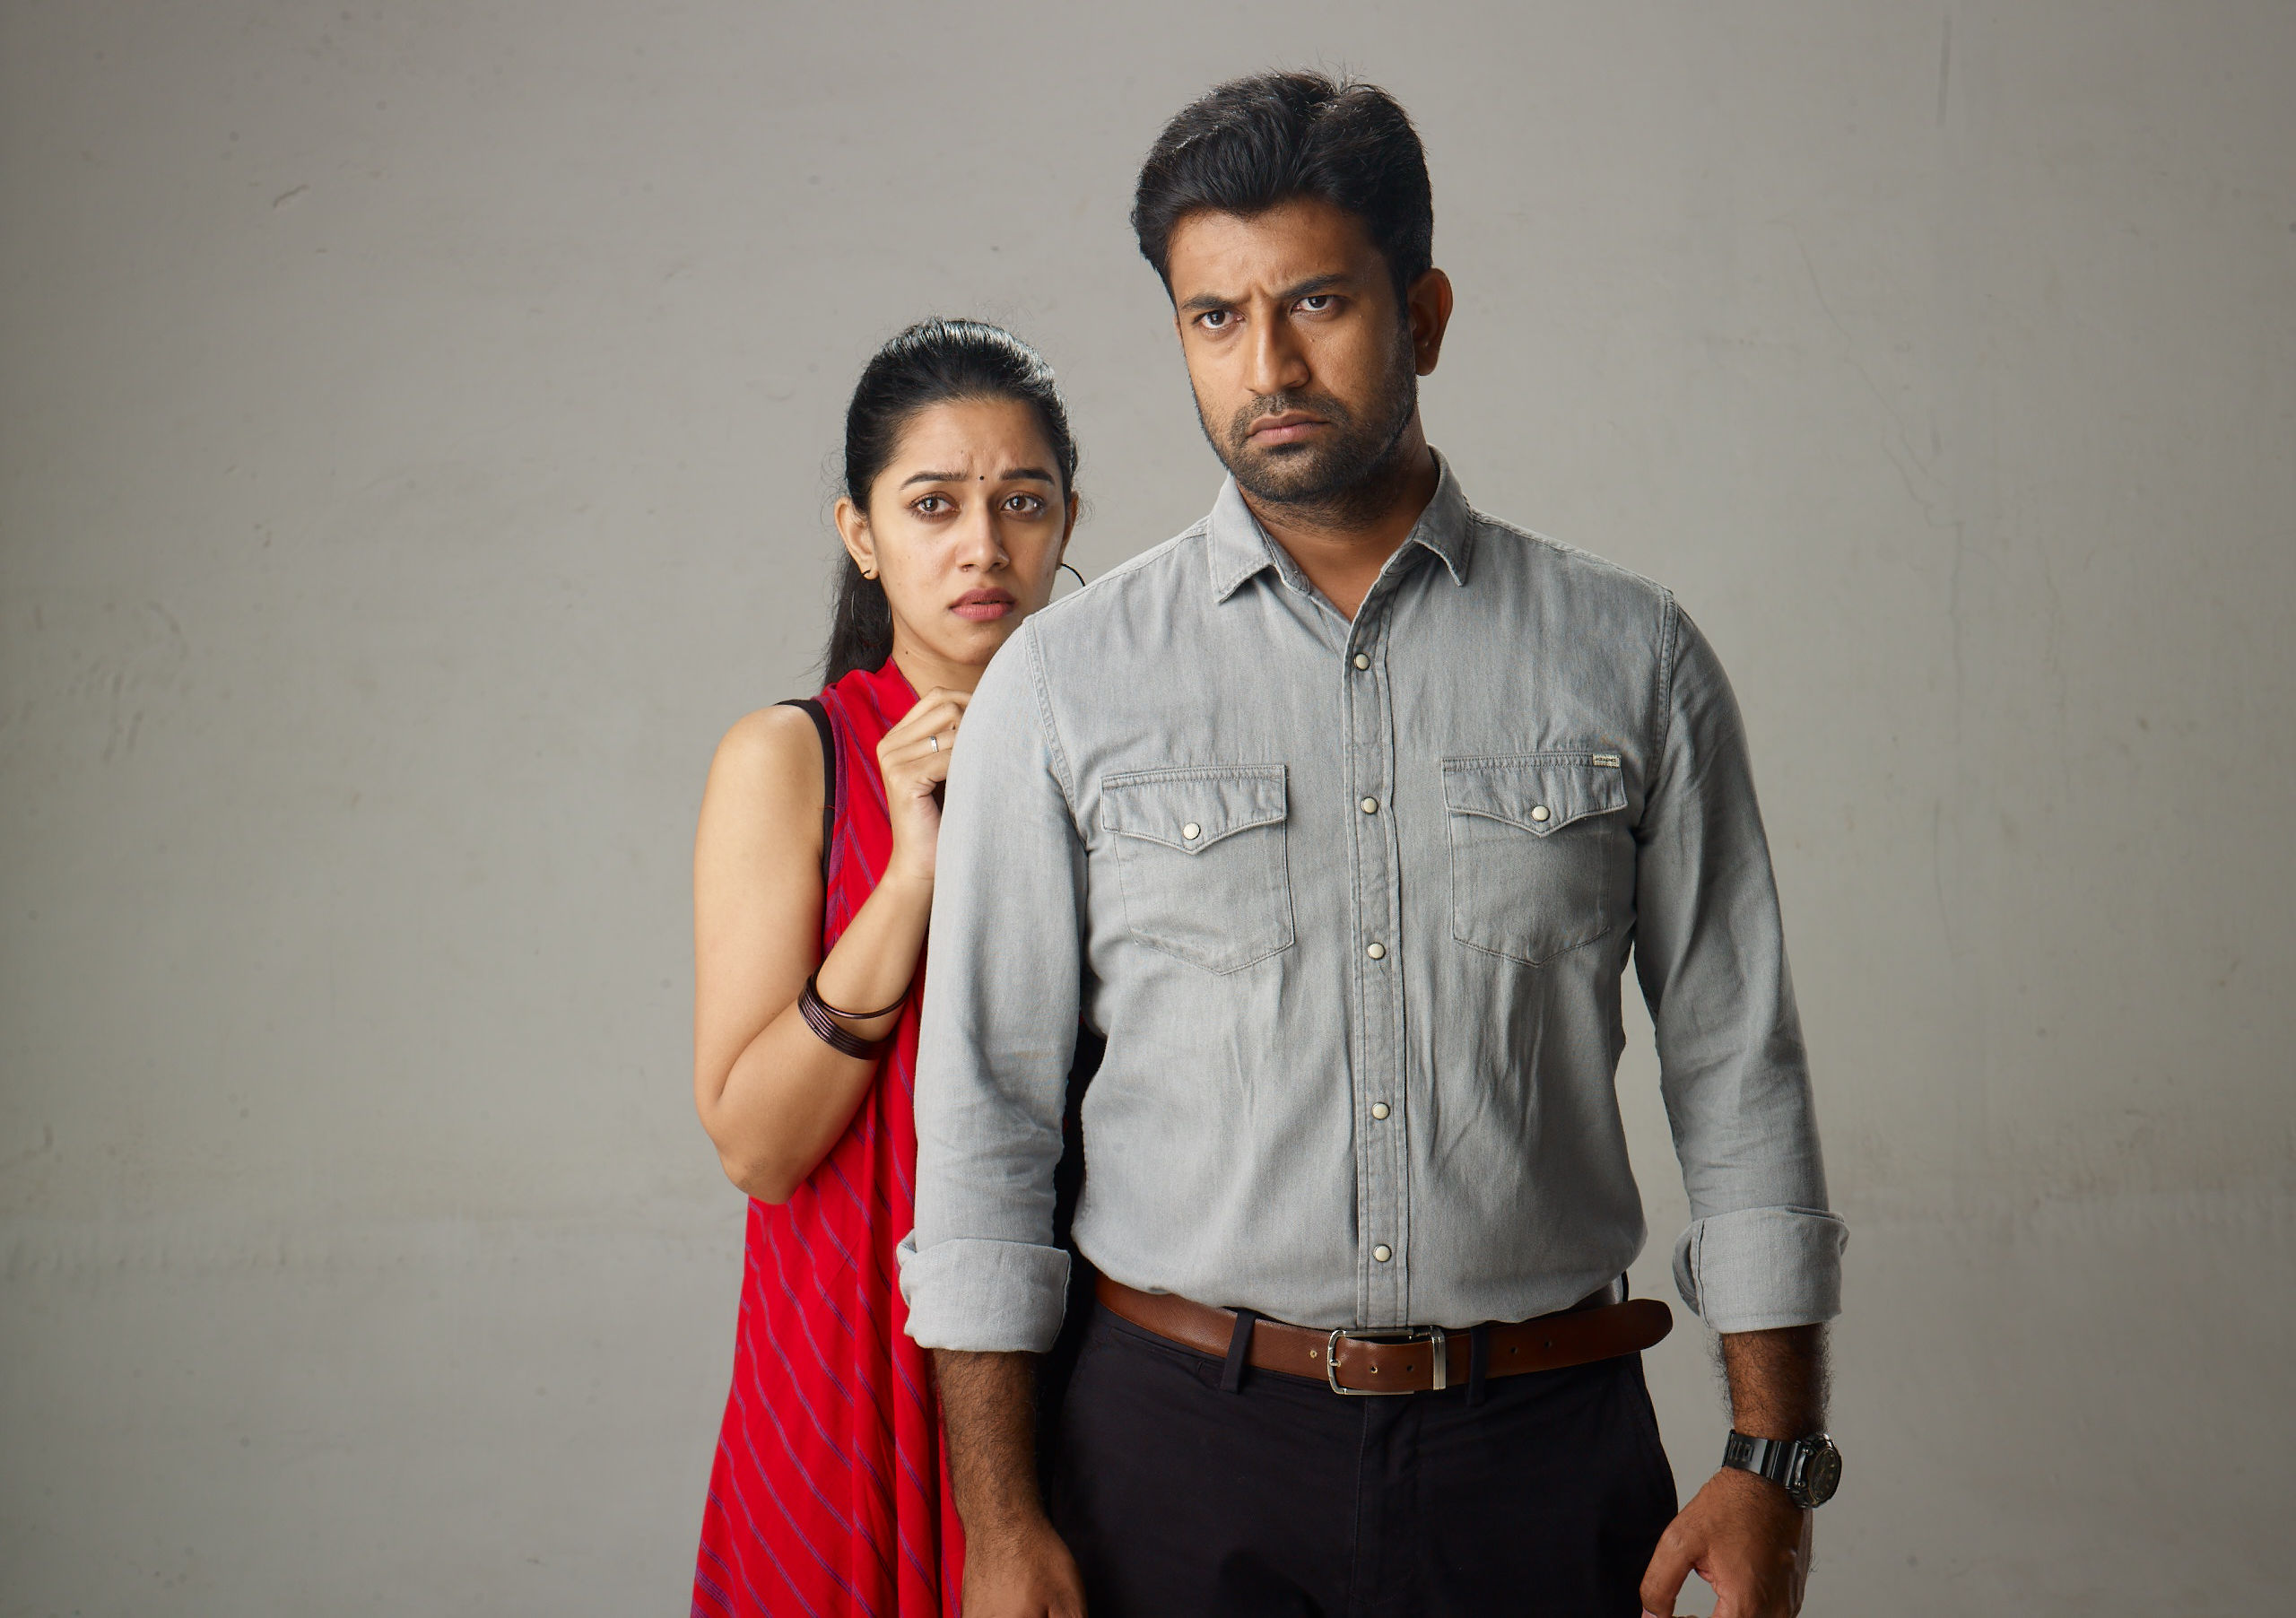 Kollywood's first time loop based film 'Jango' gets ready for release